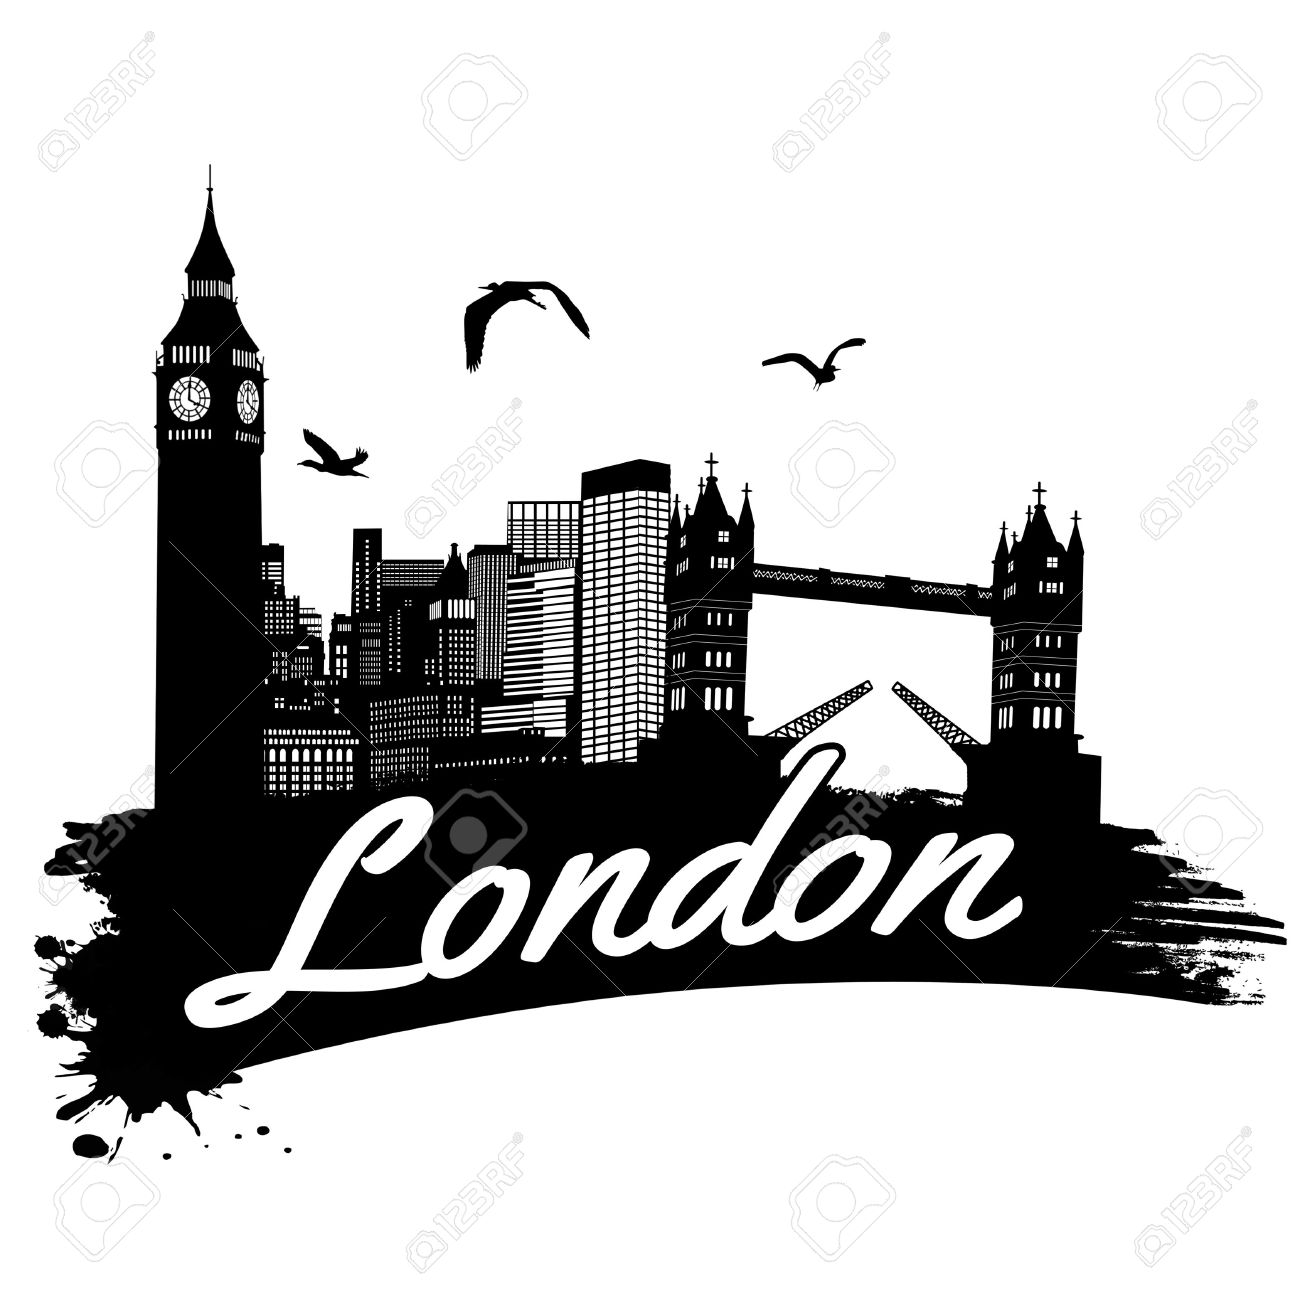 London clipart black and white image royalty free London Cliparts | Free download best London Cliparts on ClipArtMag.com image royalty free